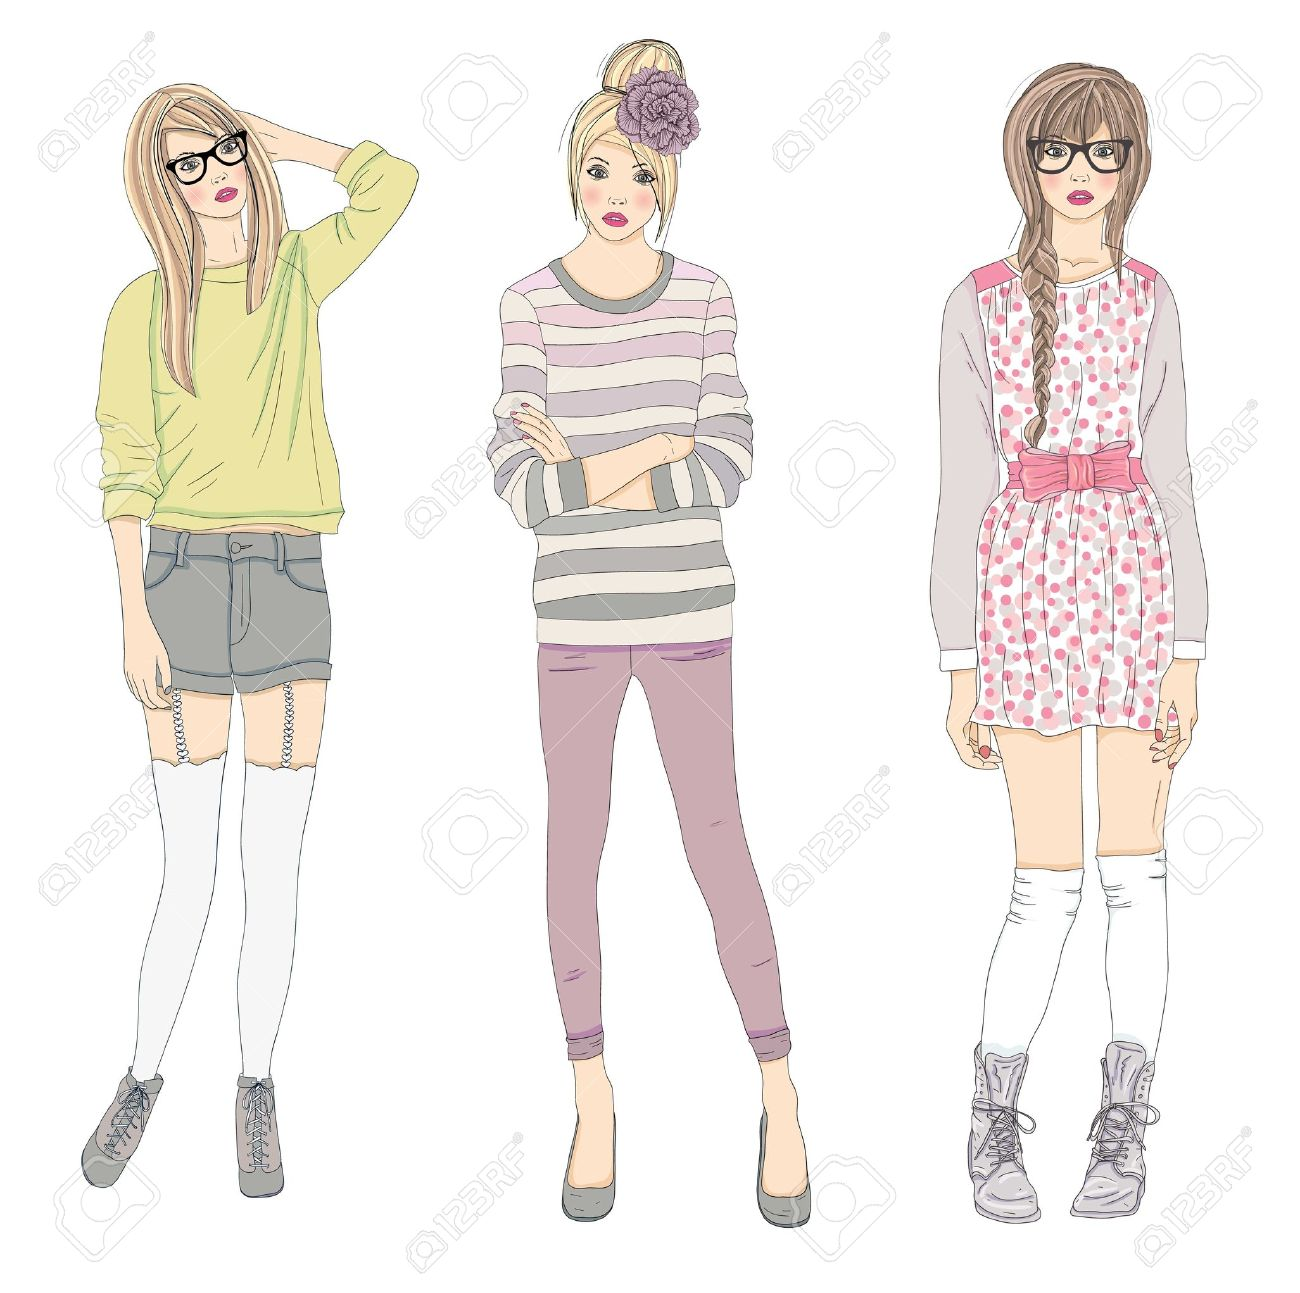 79e7bc65e2d8 Young Fashion Girls Illustration. Vector Illustration. Background ...